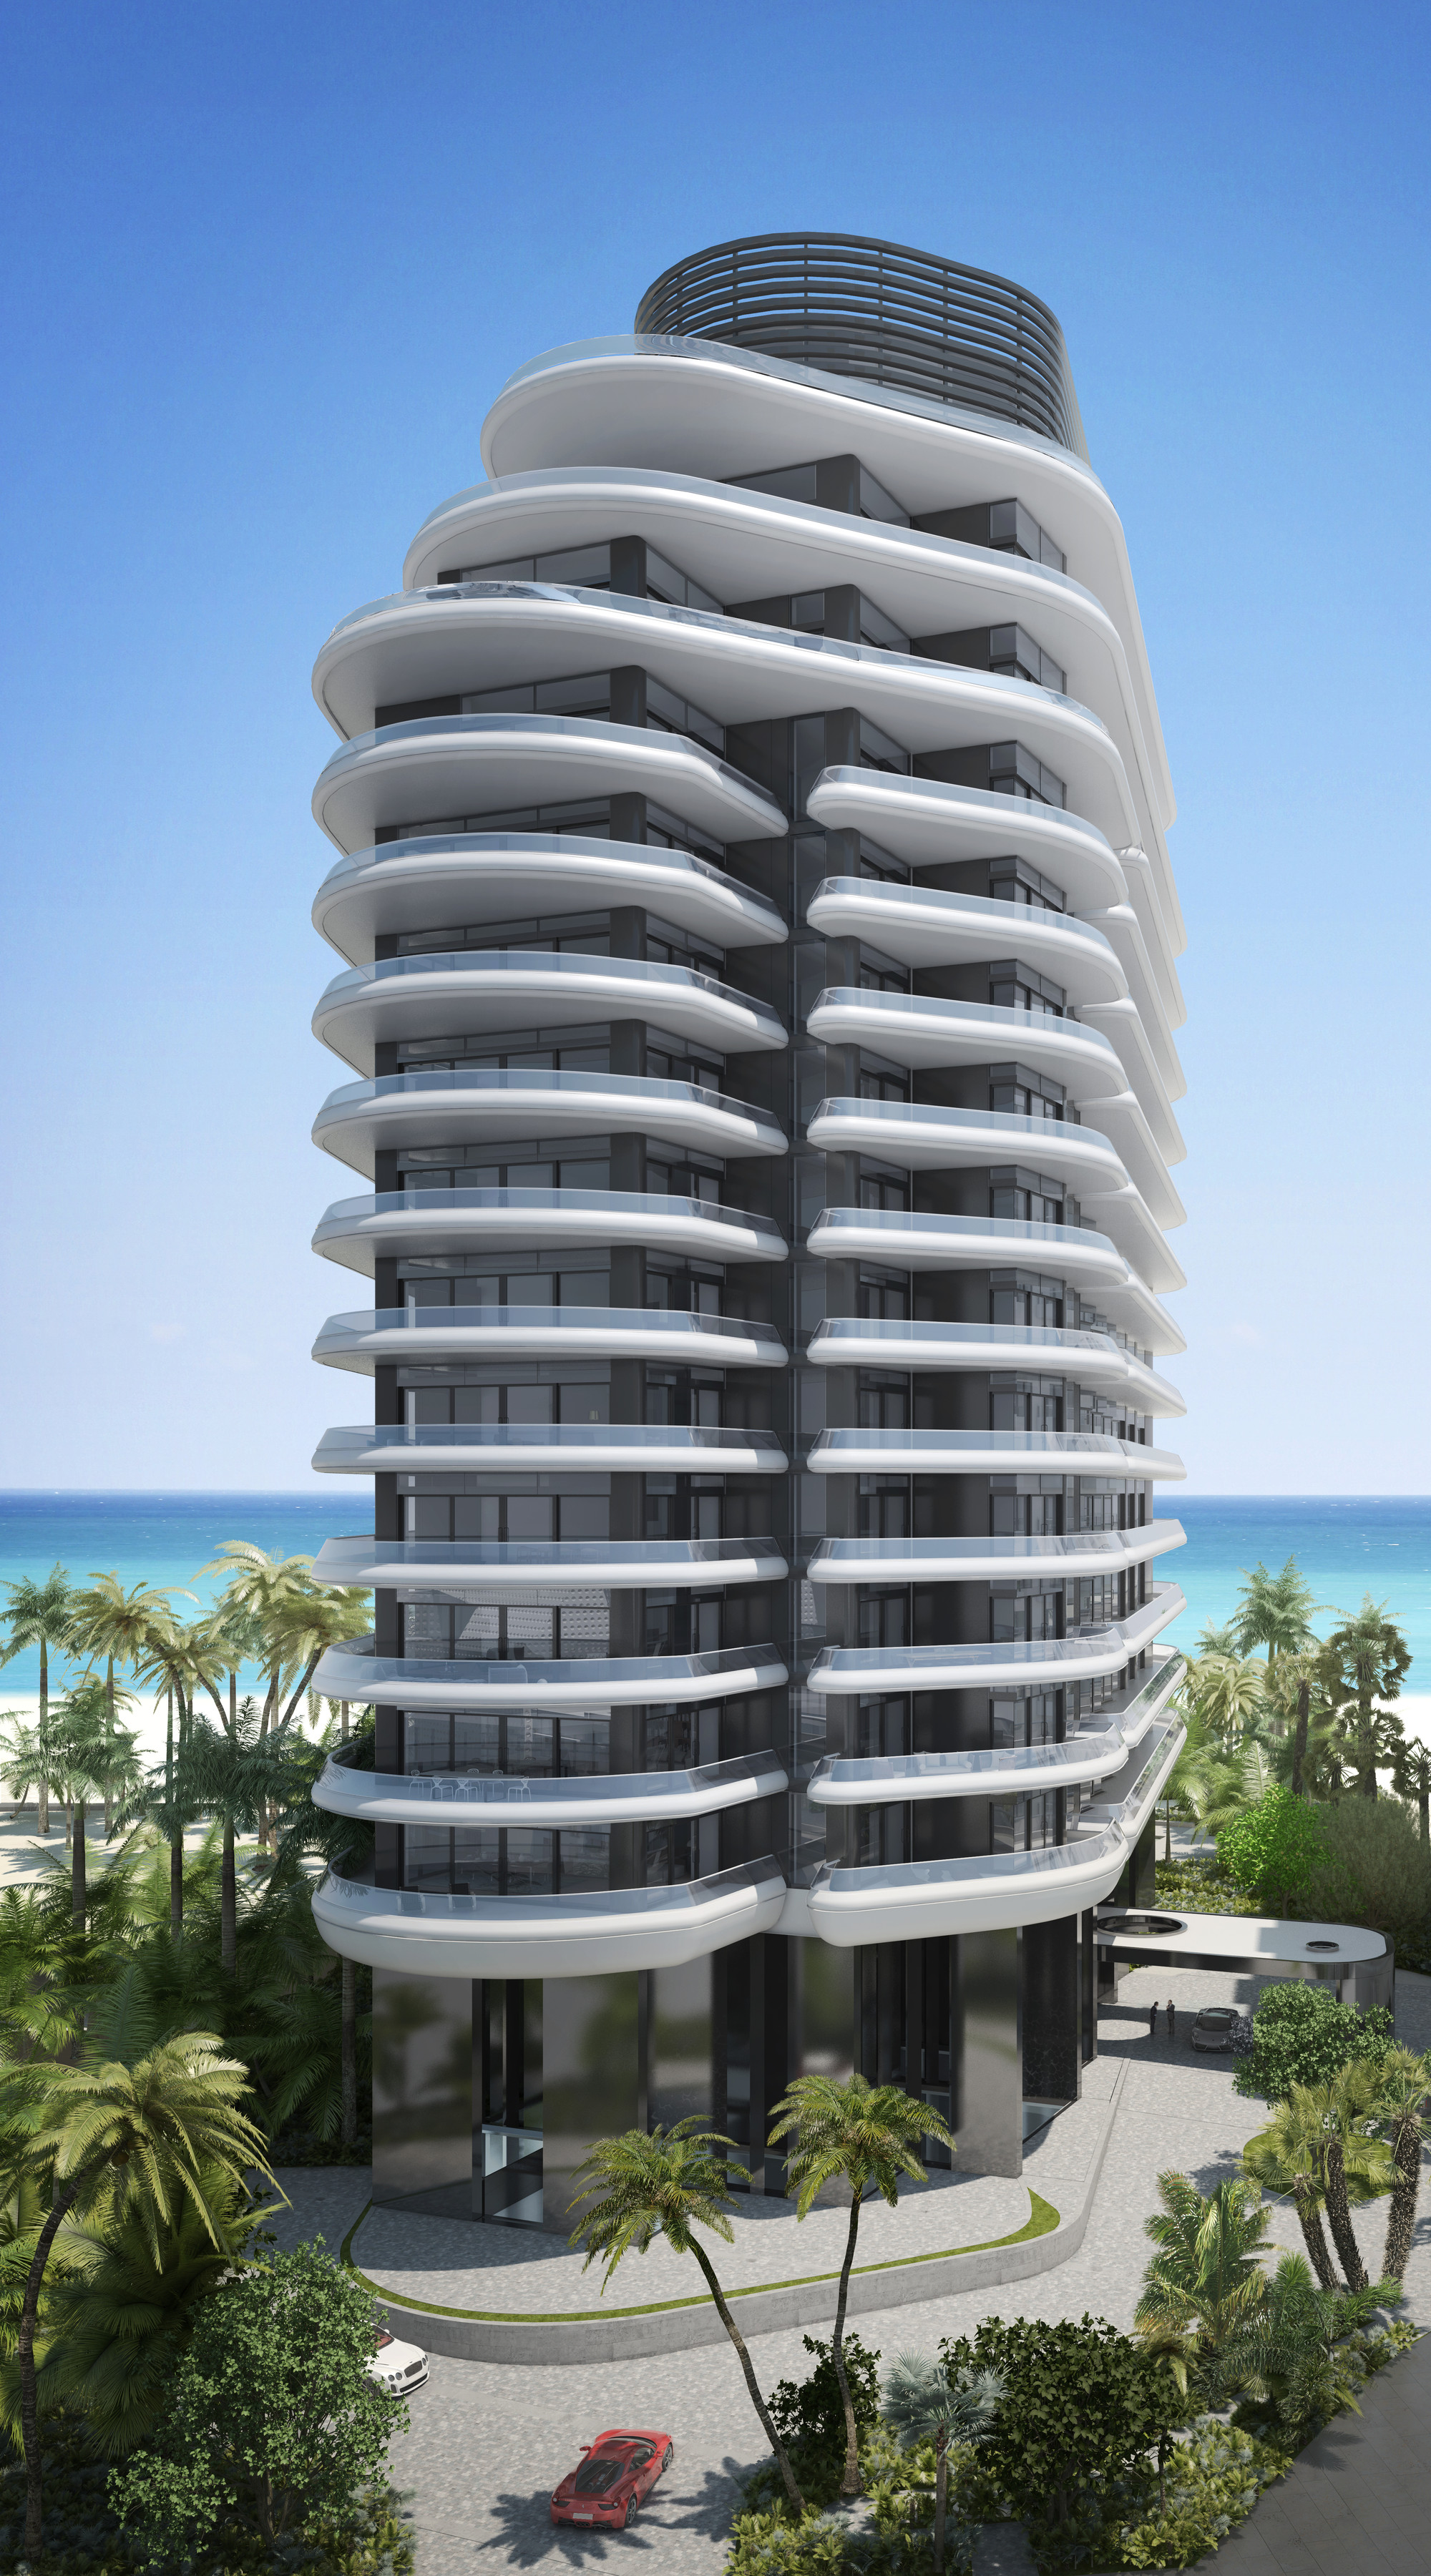 Foster partners release images of luxury condo in miami - Forster architekt ...